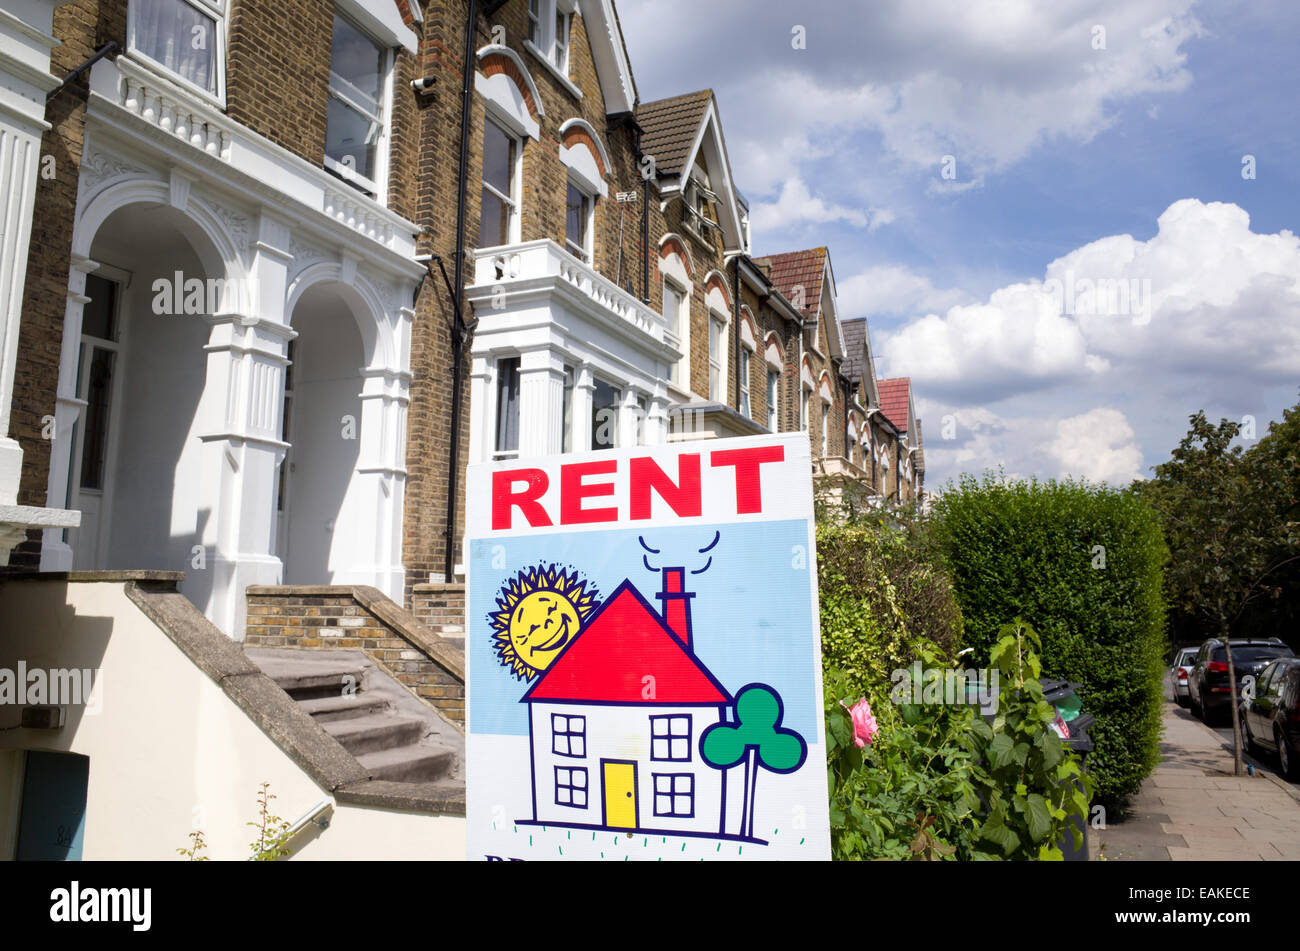 For rent sign, London, England, UK - Stock Image